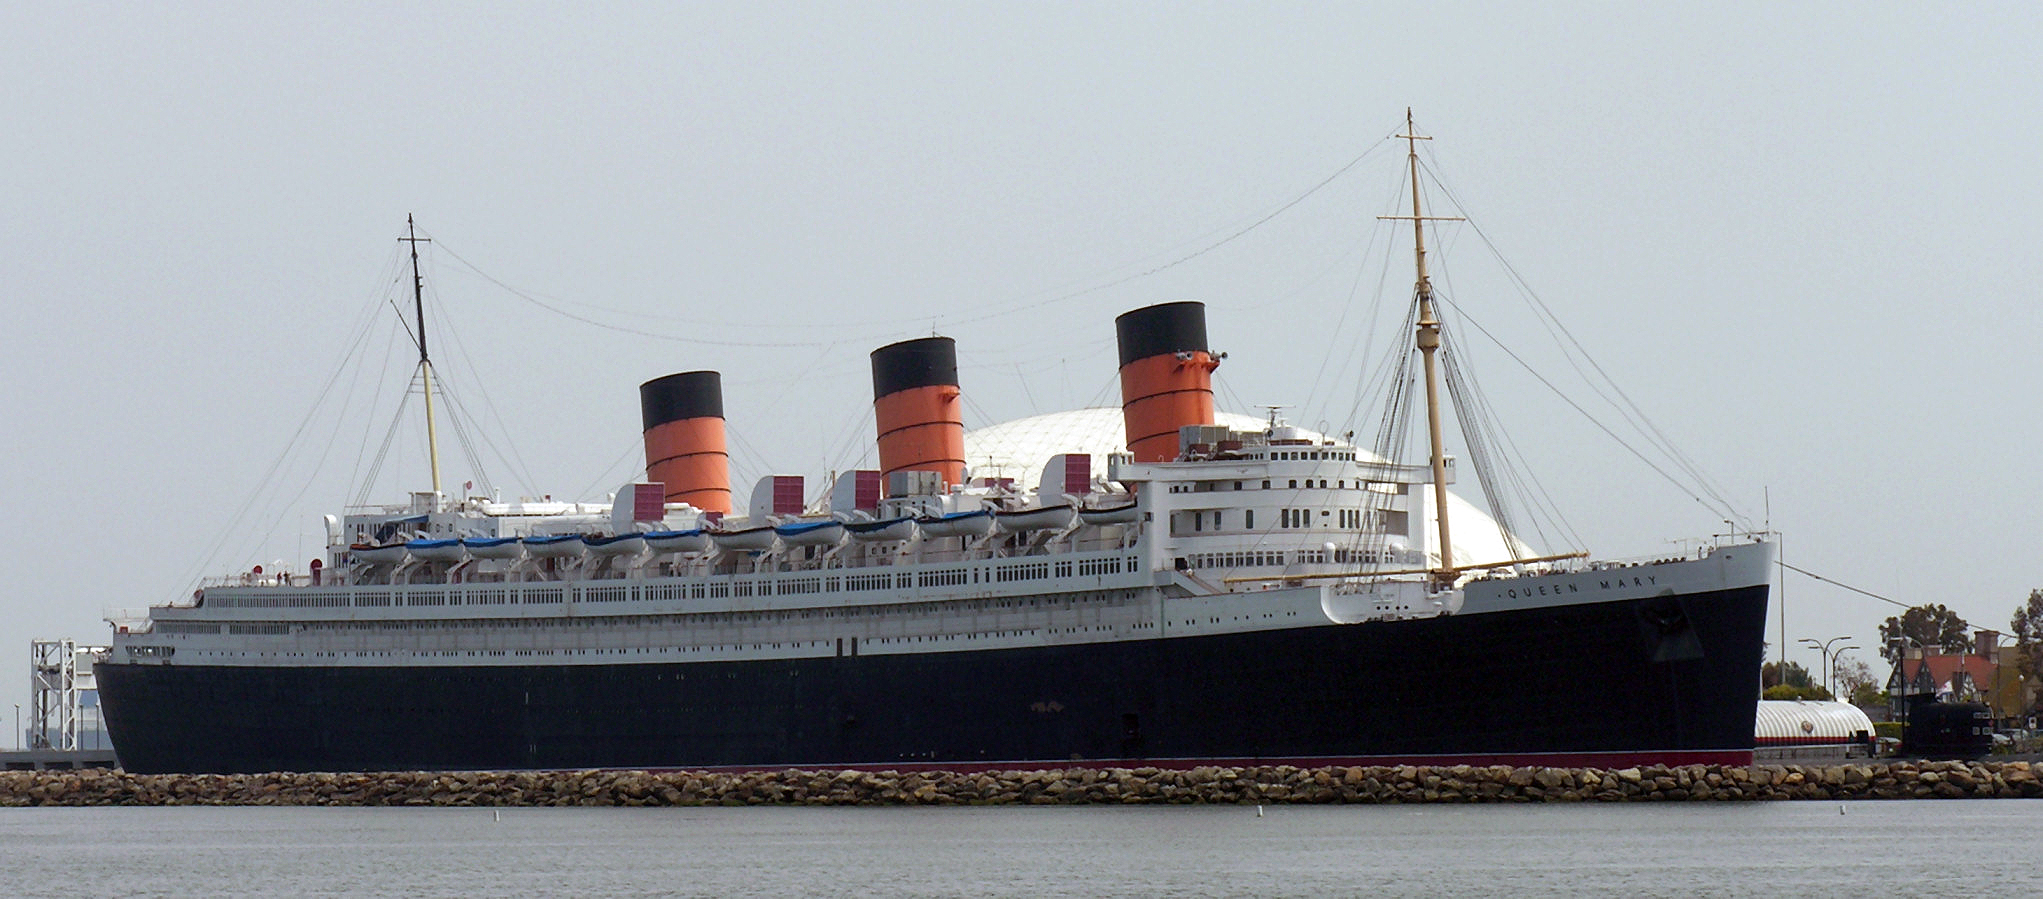 Rms queen mary pictures